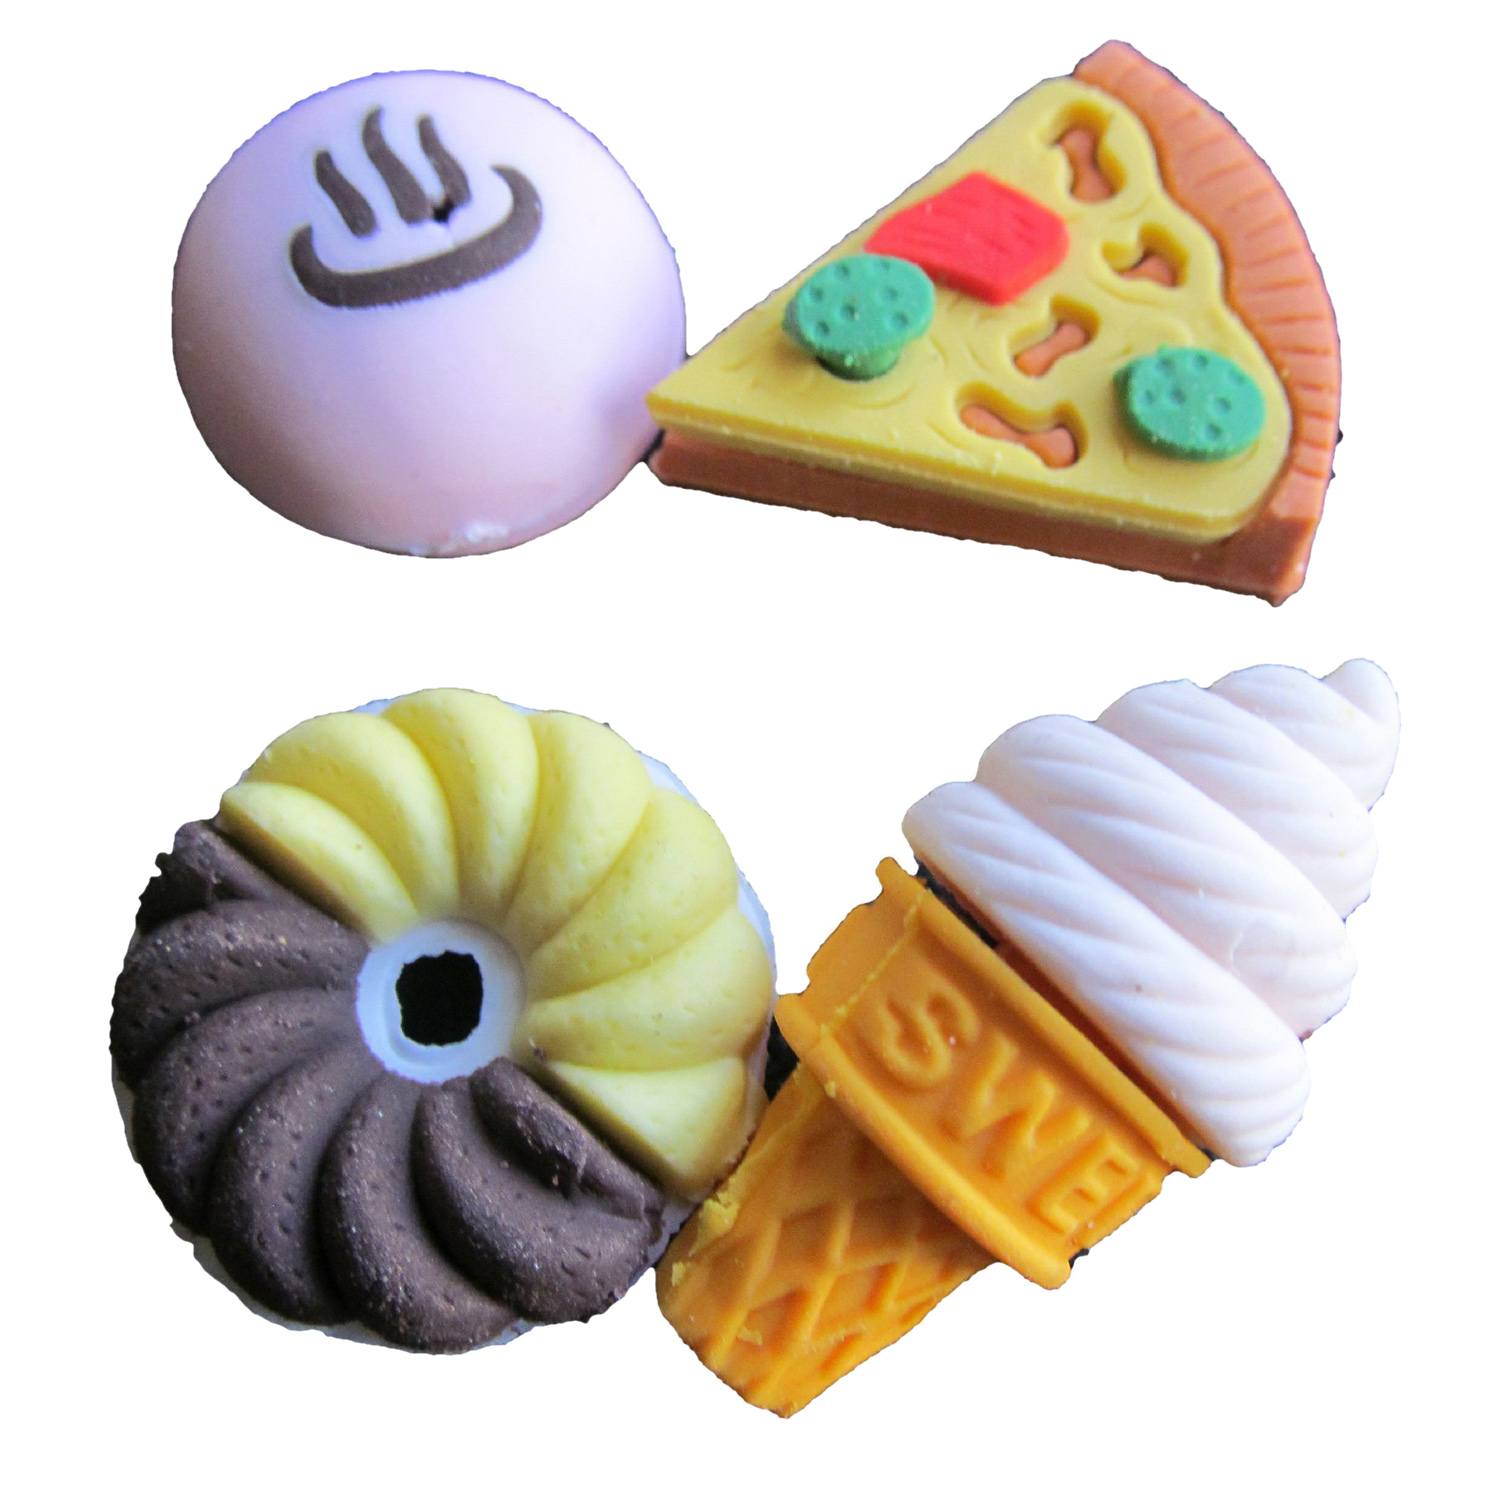 Assorted Food Novelty Cute Pencil Rubber Eraser Erasers Stationery Ice Cream Cake Kid Fun Toy